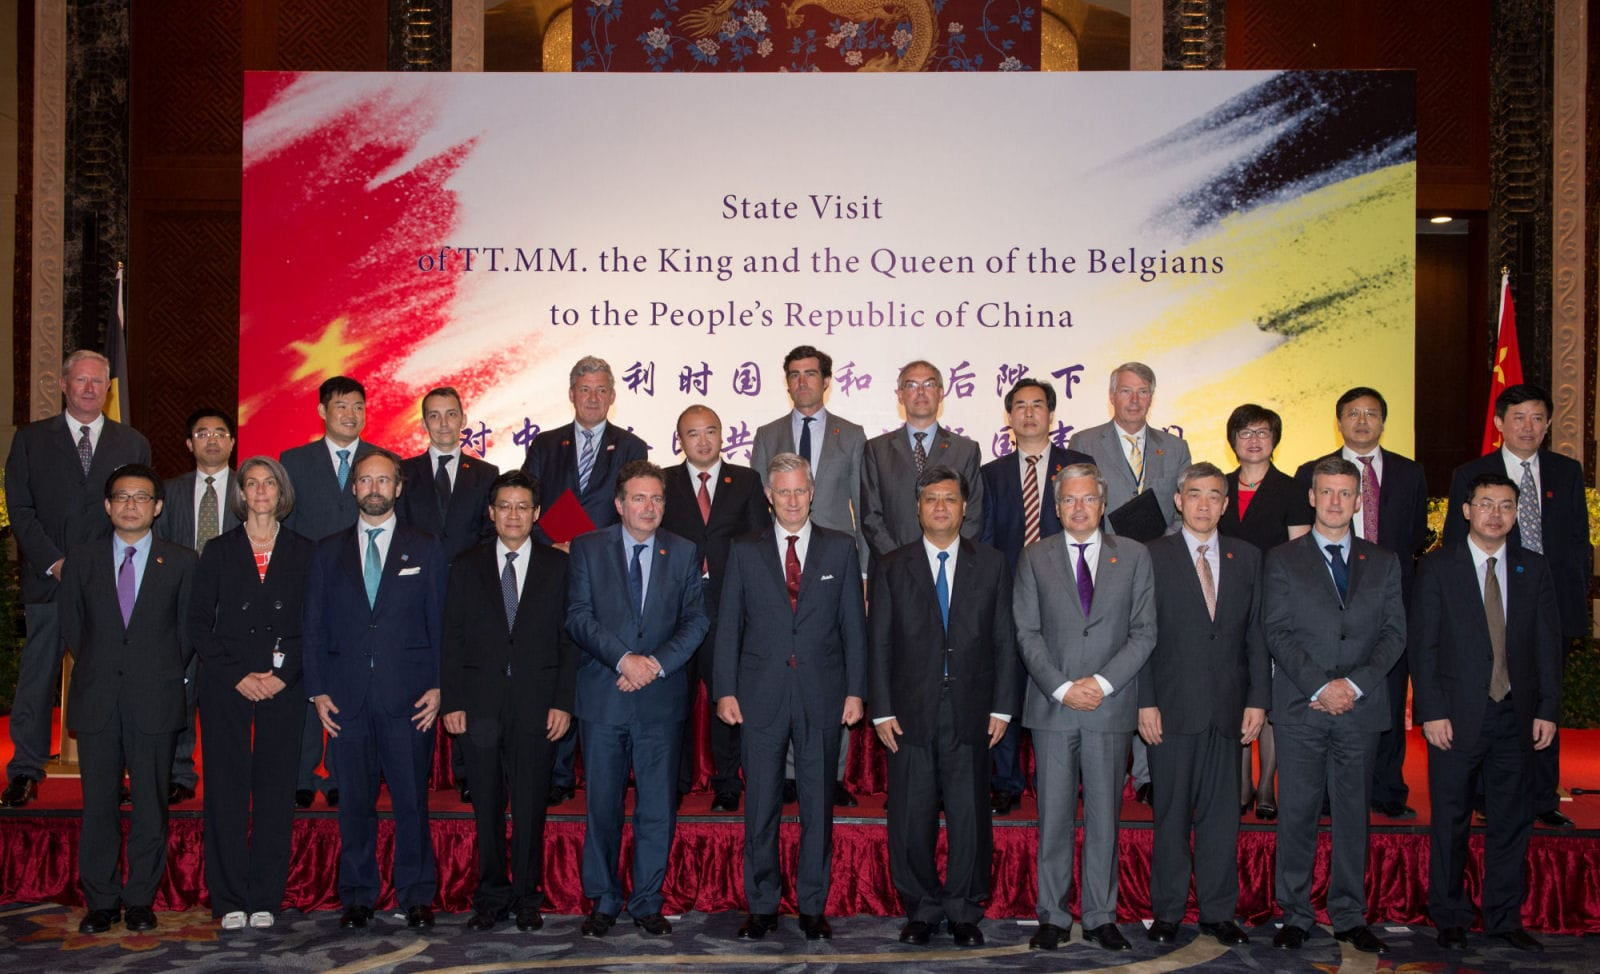 20150625 - SUZHOU, CHINA: King Philippe - Filip of Belgium poses with businessmen after a signing ceremony in Suzhou on the seventh day of a royal visit to China, Thursday 25 June 2015, in China. BELGA PHOTO BENOIT DOPPAGNE